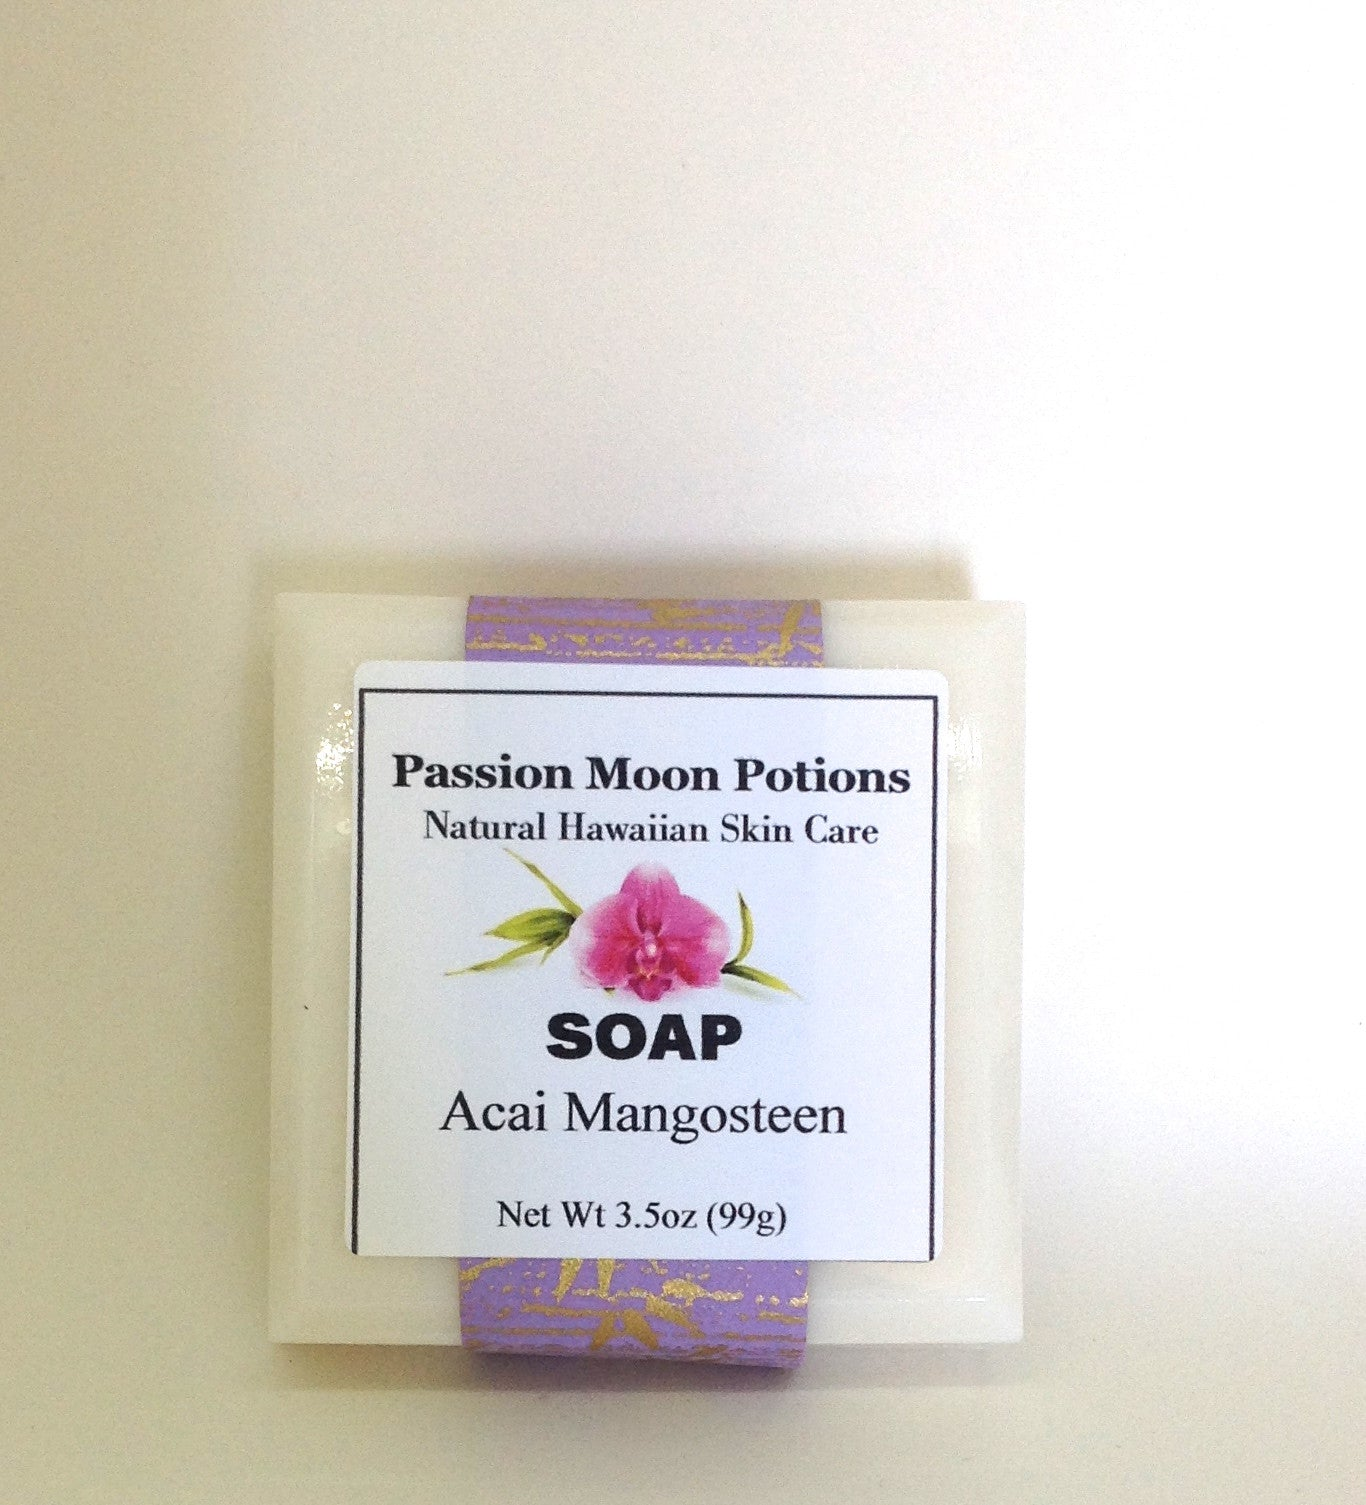 Acai Mangosteen Soap - Passion Moon Potions - 2